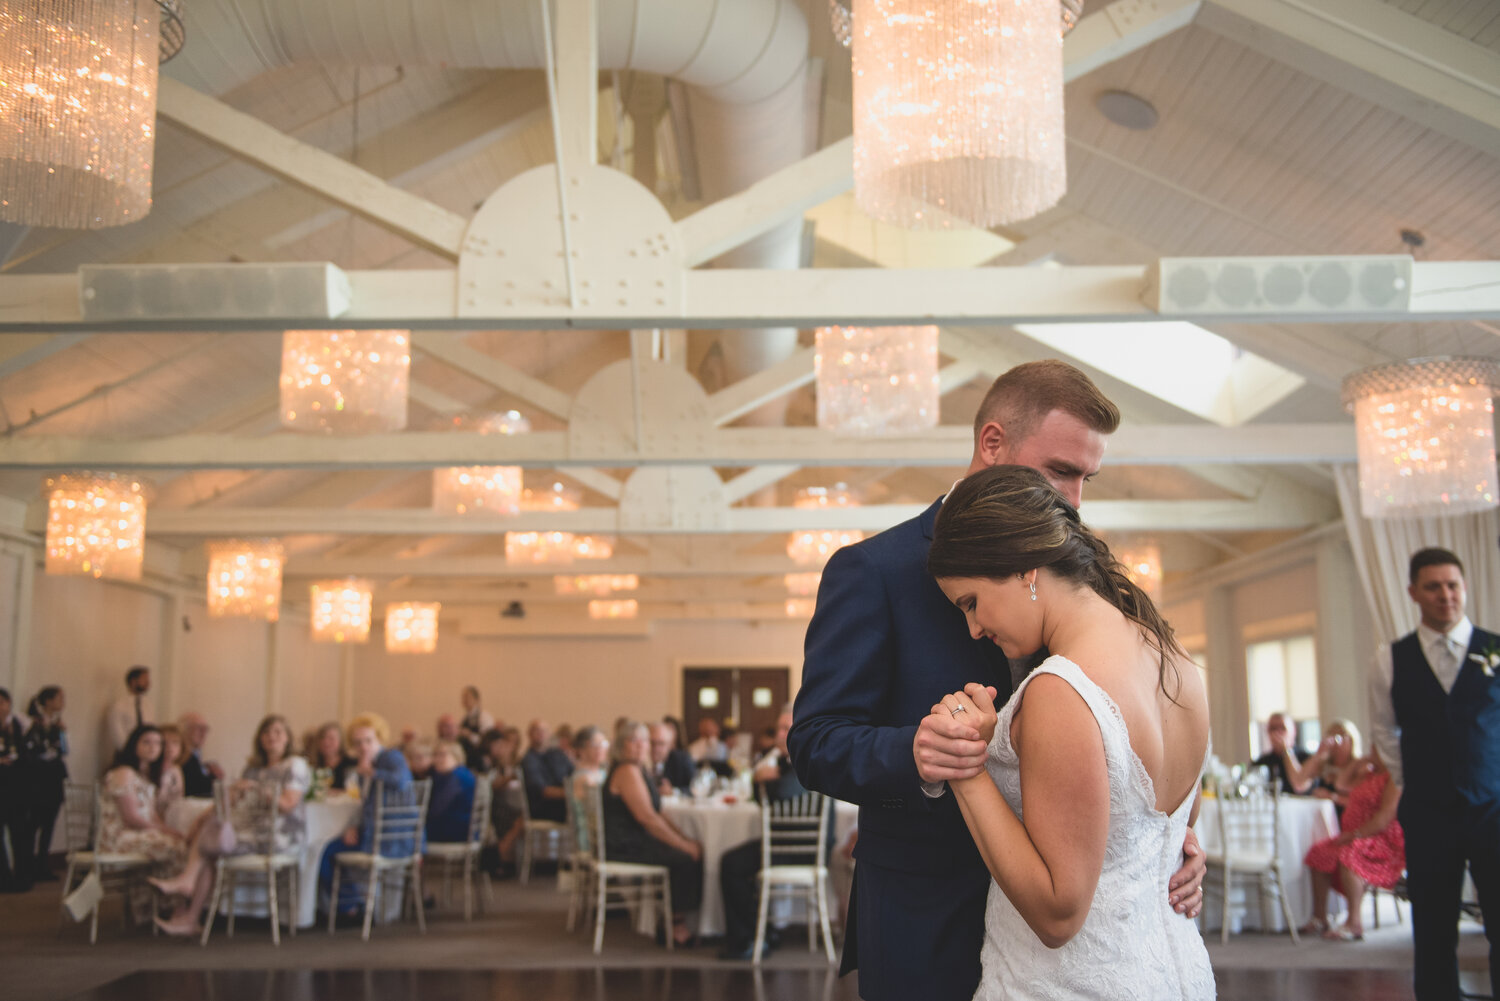 Bobby and Dayna - Wedding Photography Services by Devon Crowell